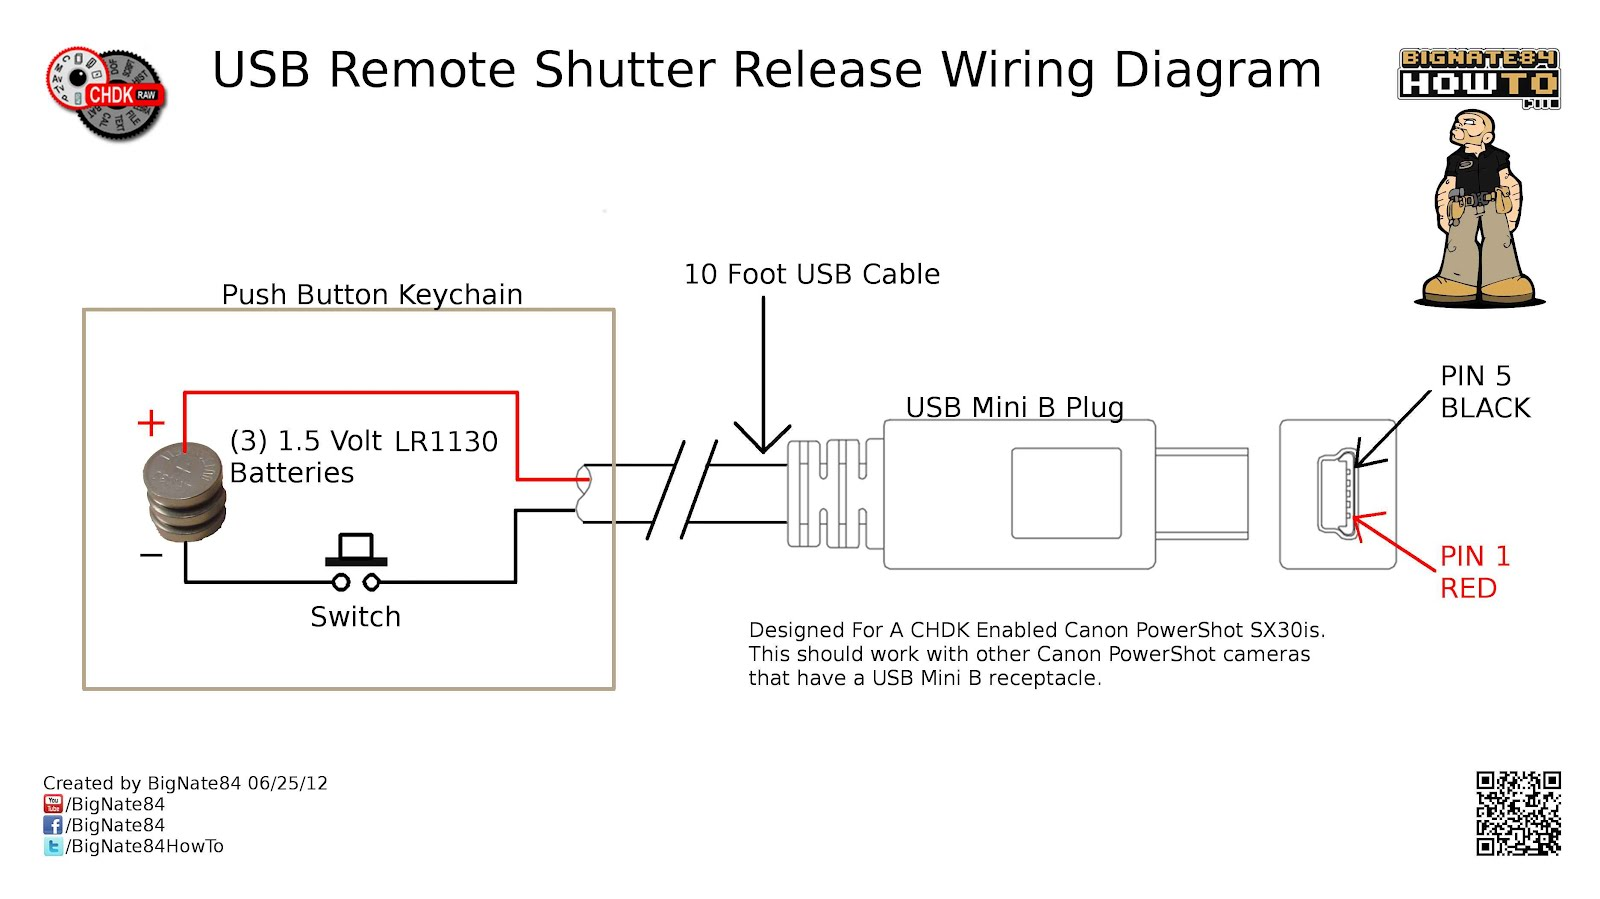 latest?cb=20120809225626 image 0001 usb remote shutter wiring diagram 1 jpeg chdk wiki usb audio wiring diagram at creativeand.co